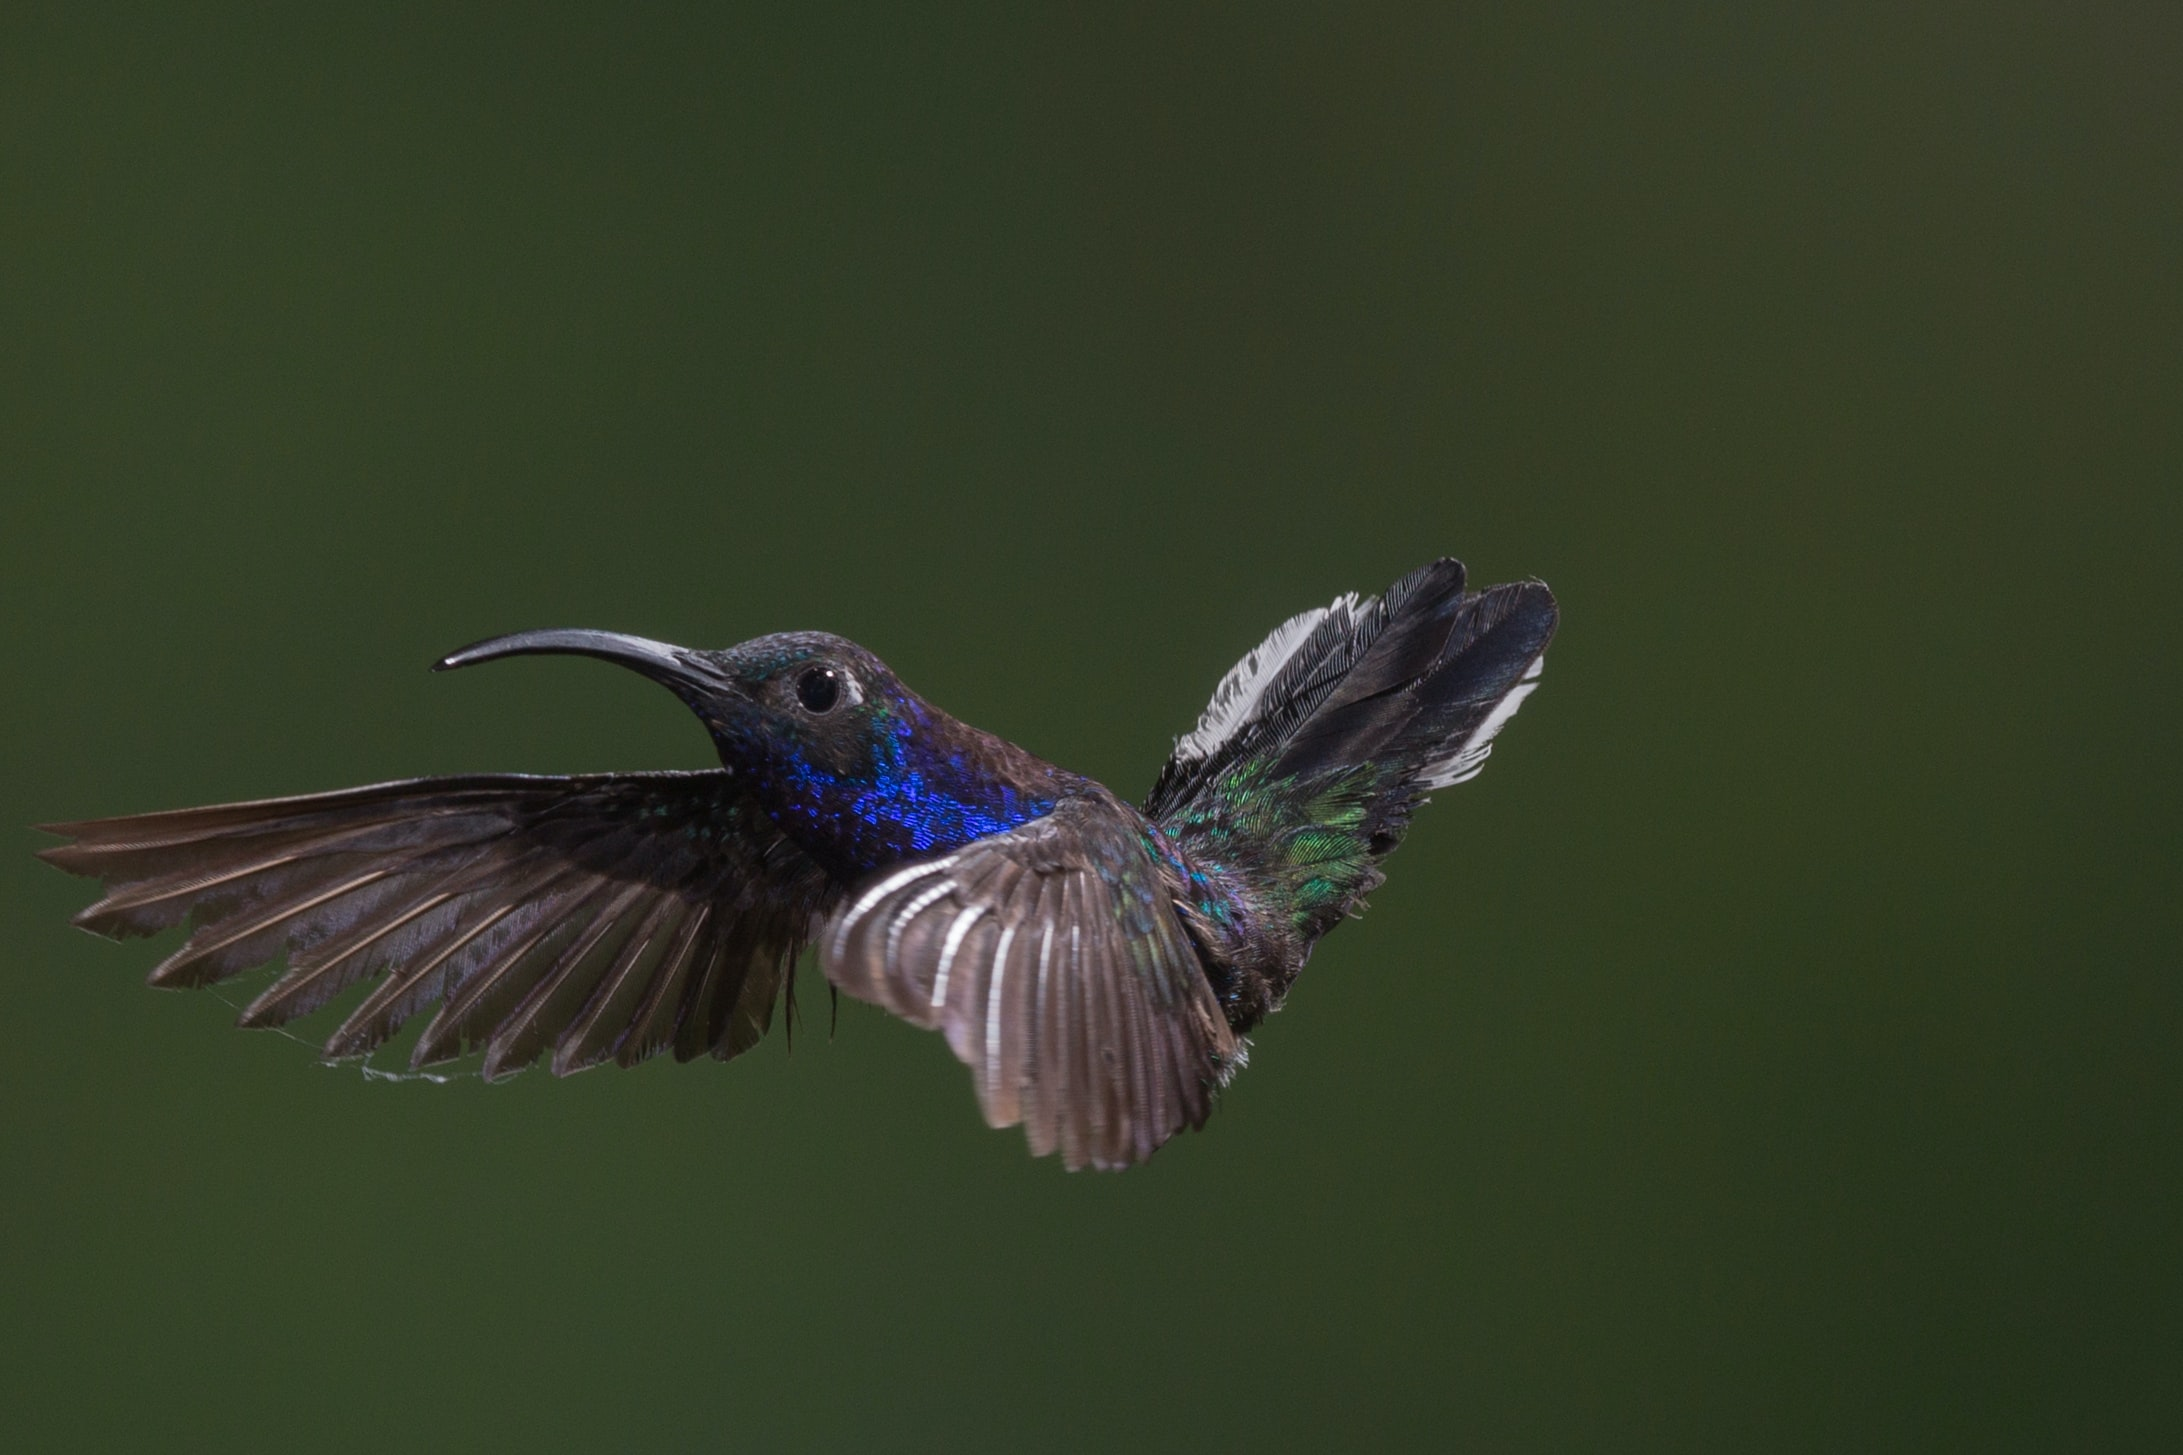 Glossy blue hummingbird flapping its wings in mid air